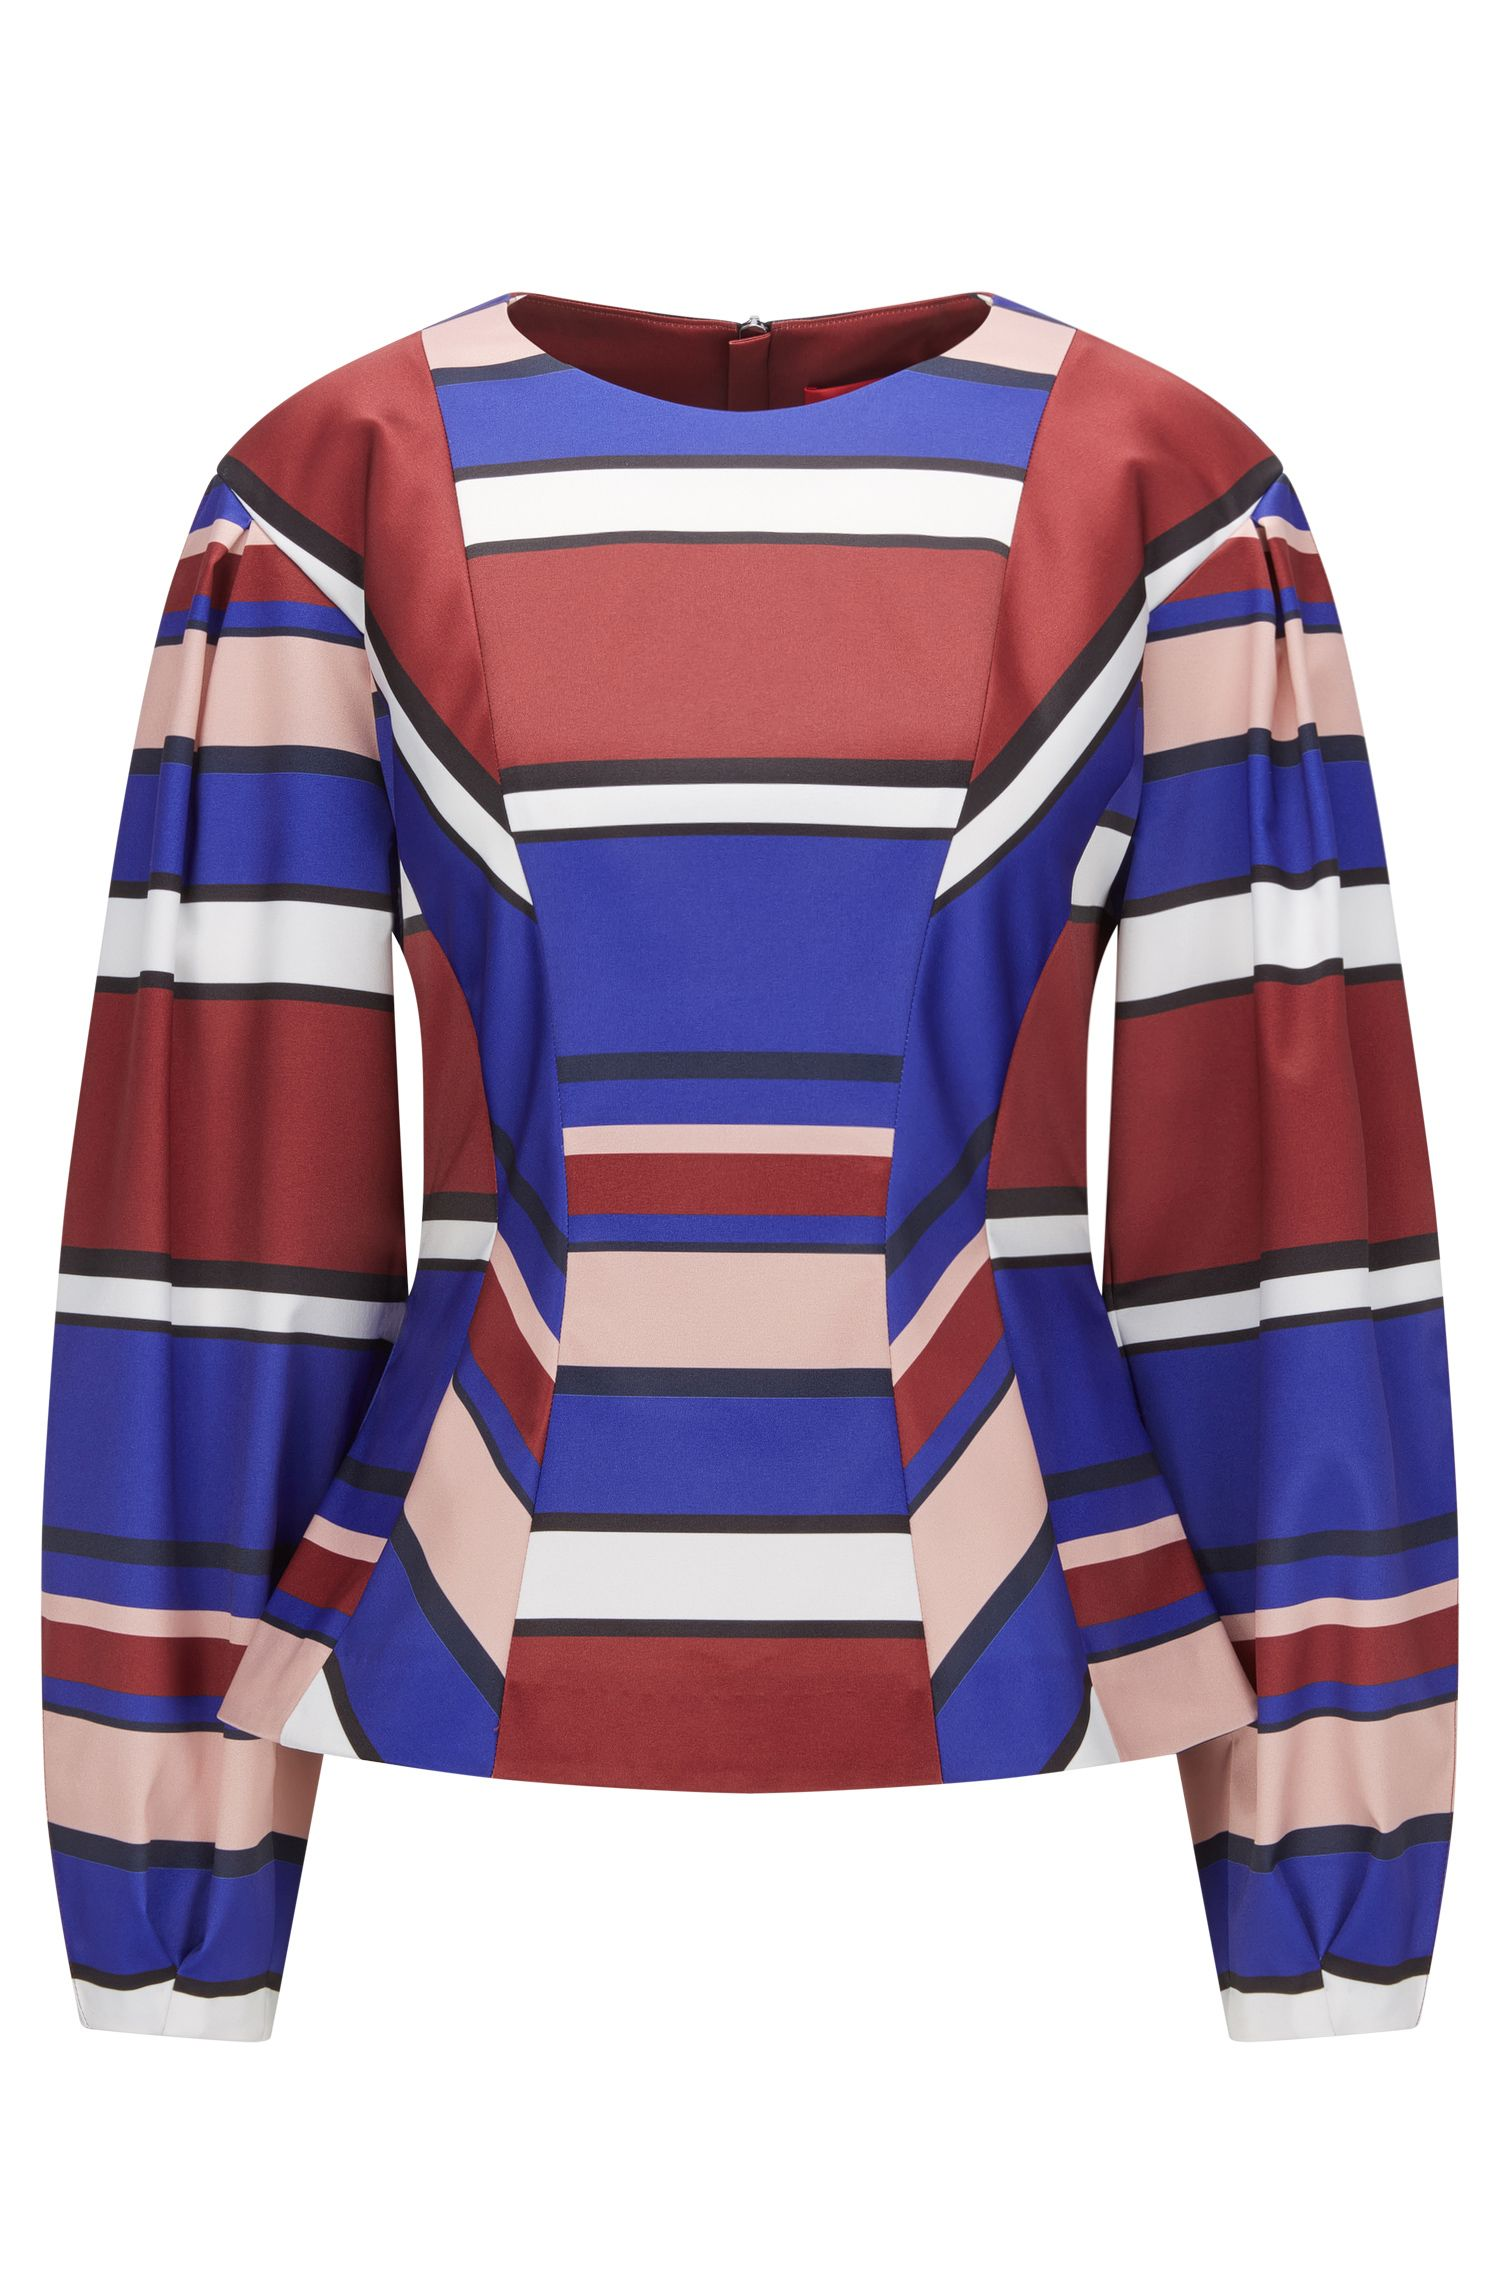 Balloon-sleeved striped top in a stretch technical fabric